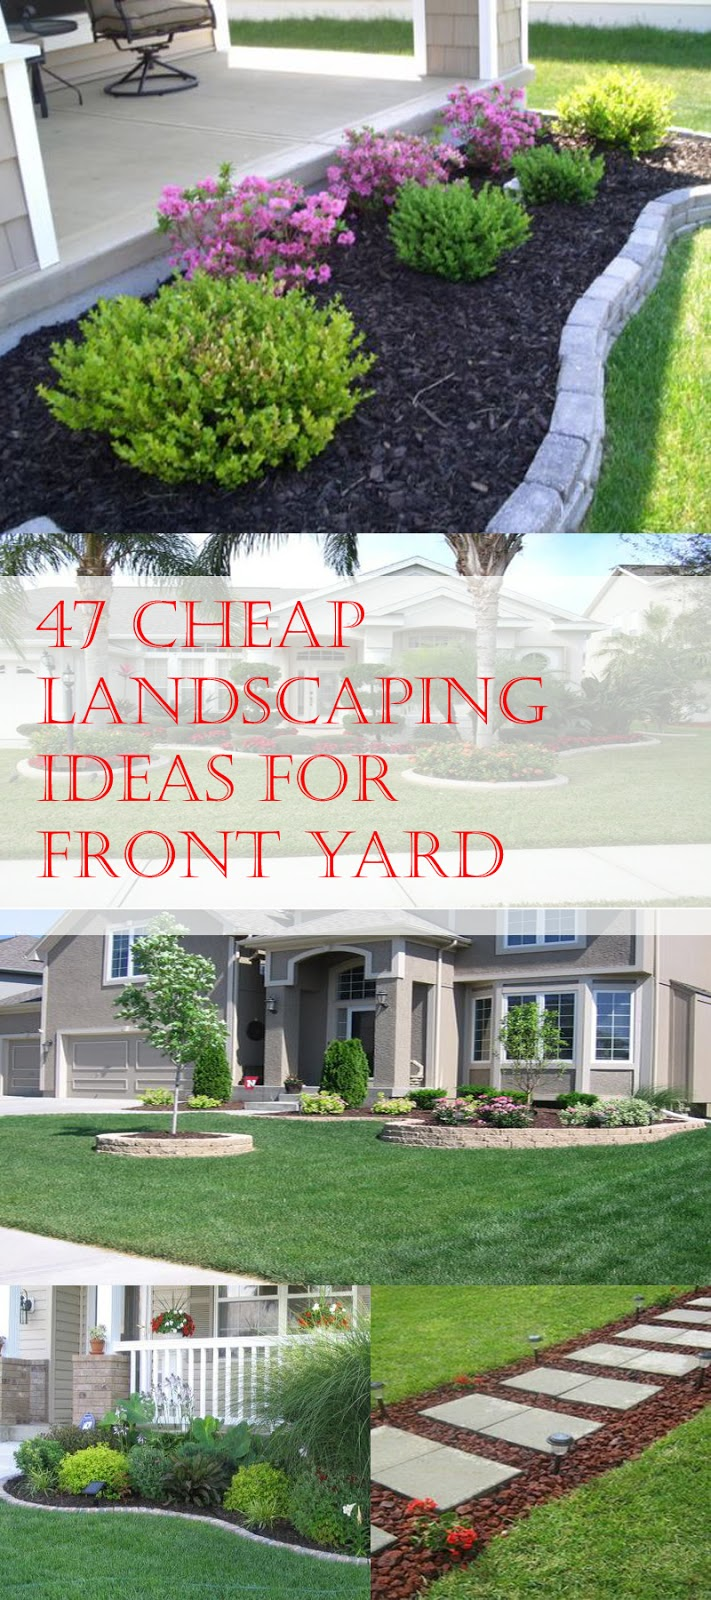 47 Cheap Landscaping Ideas For Front Yard - A Blog on Garden on Garden Design Ideas On A Budget  id=67204